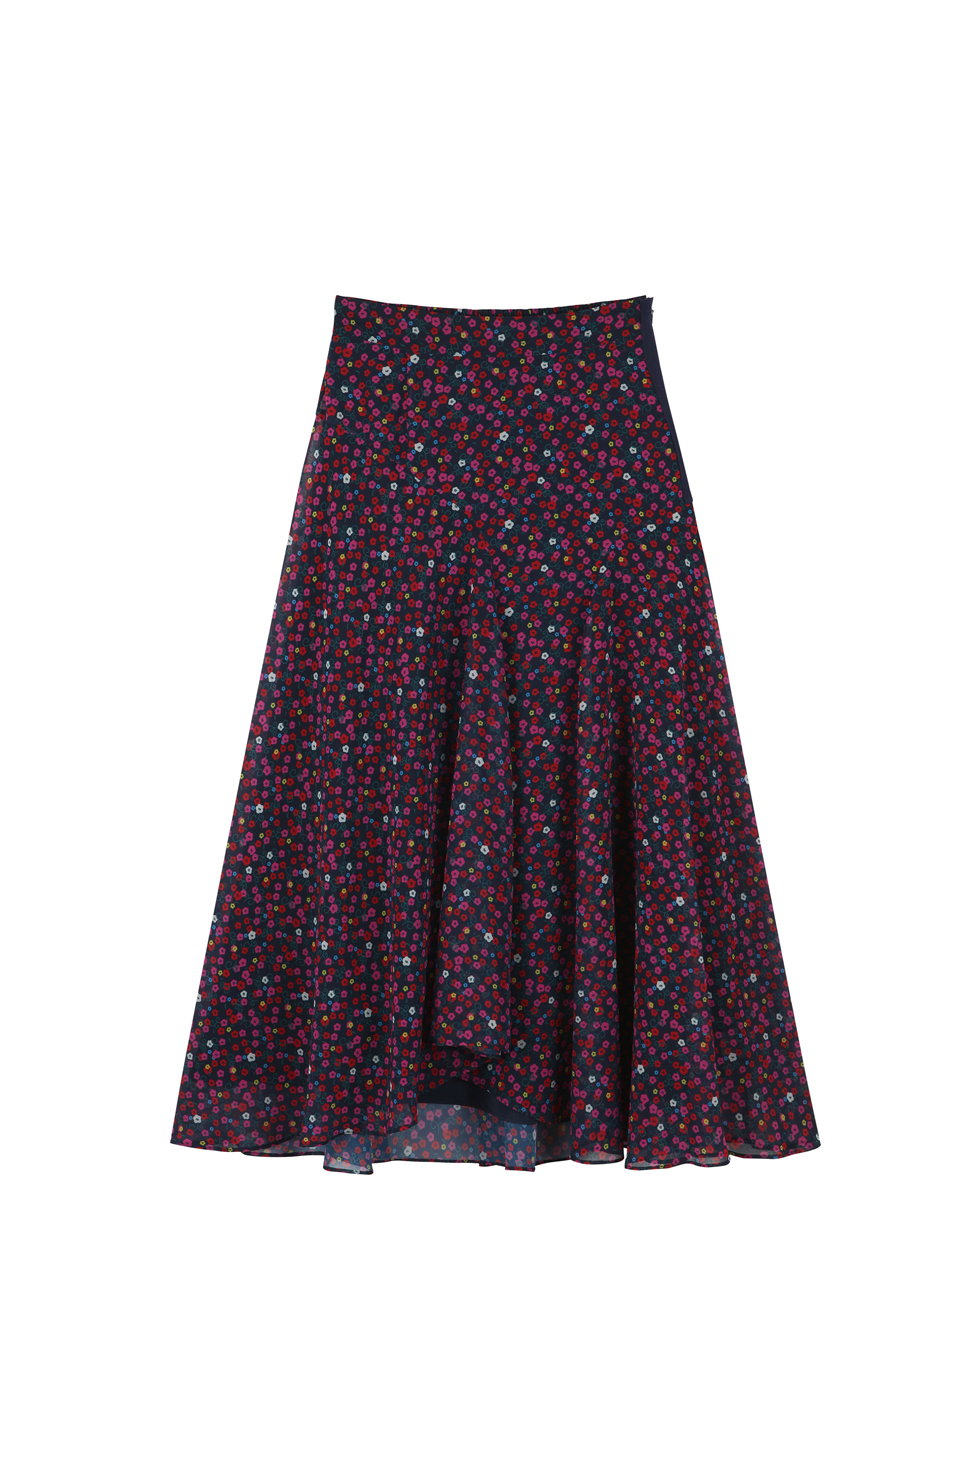 UNBALANCED FULL SKIRT -  FLORAL